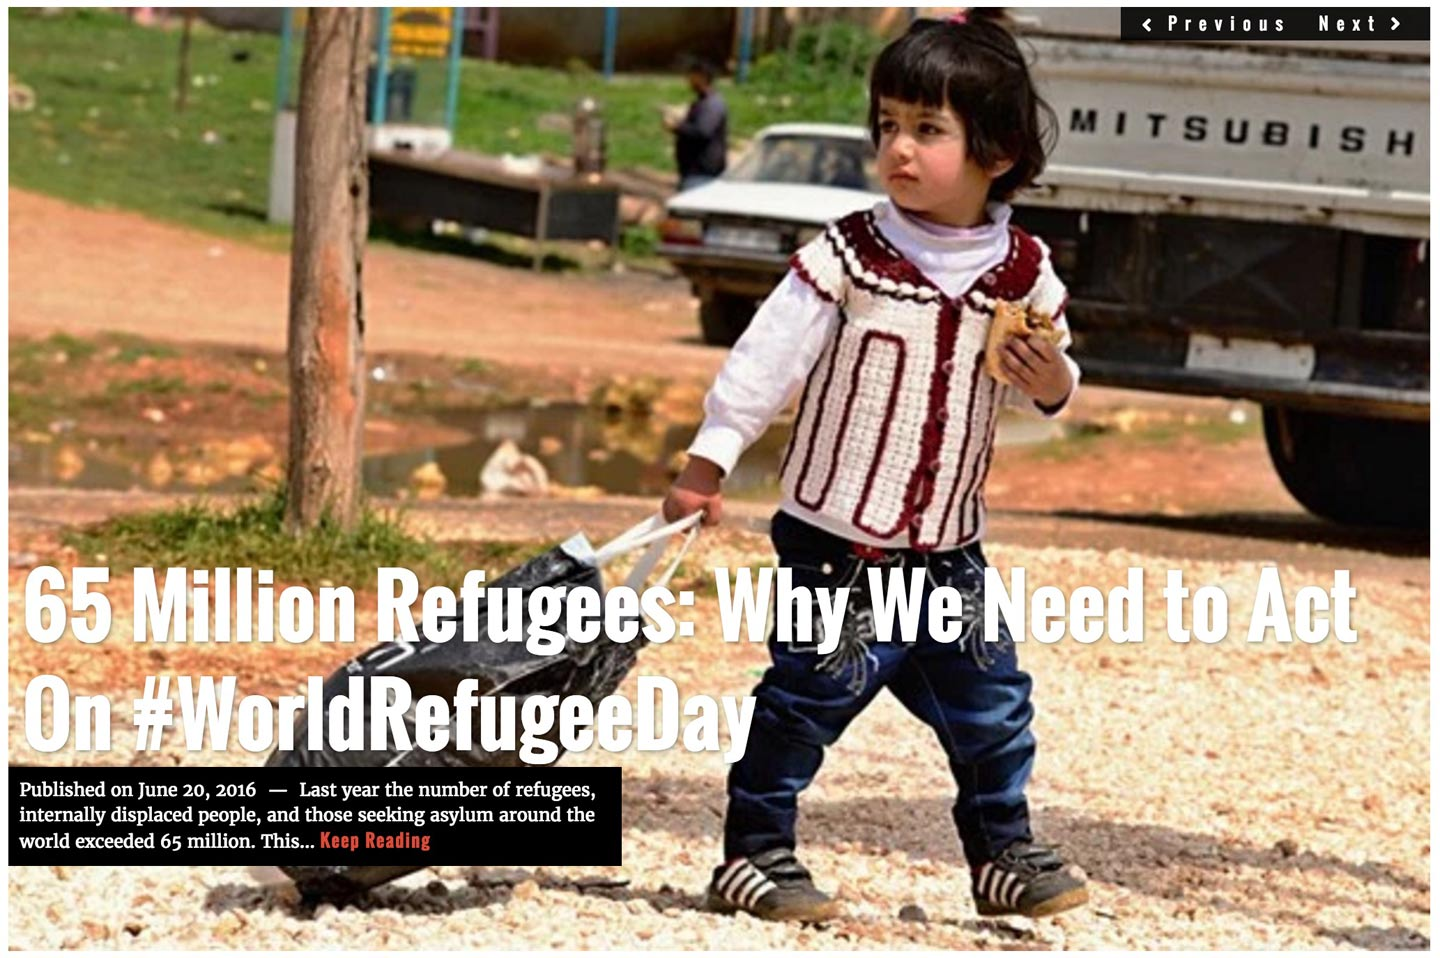 Image Lima Charlie News headline June 20, 2016 World Refugee Day